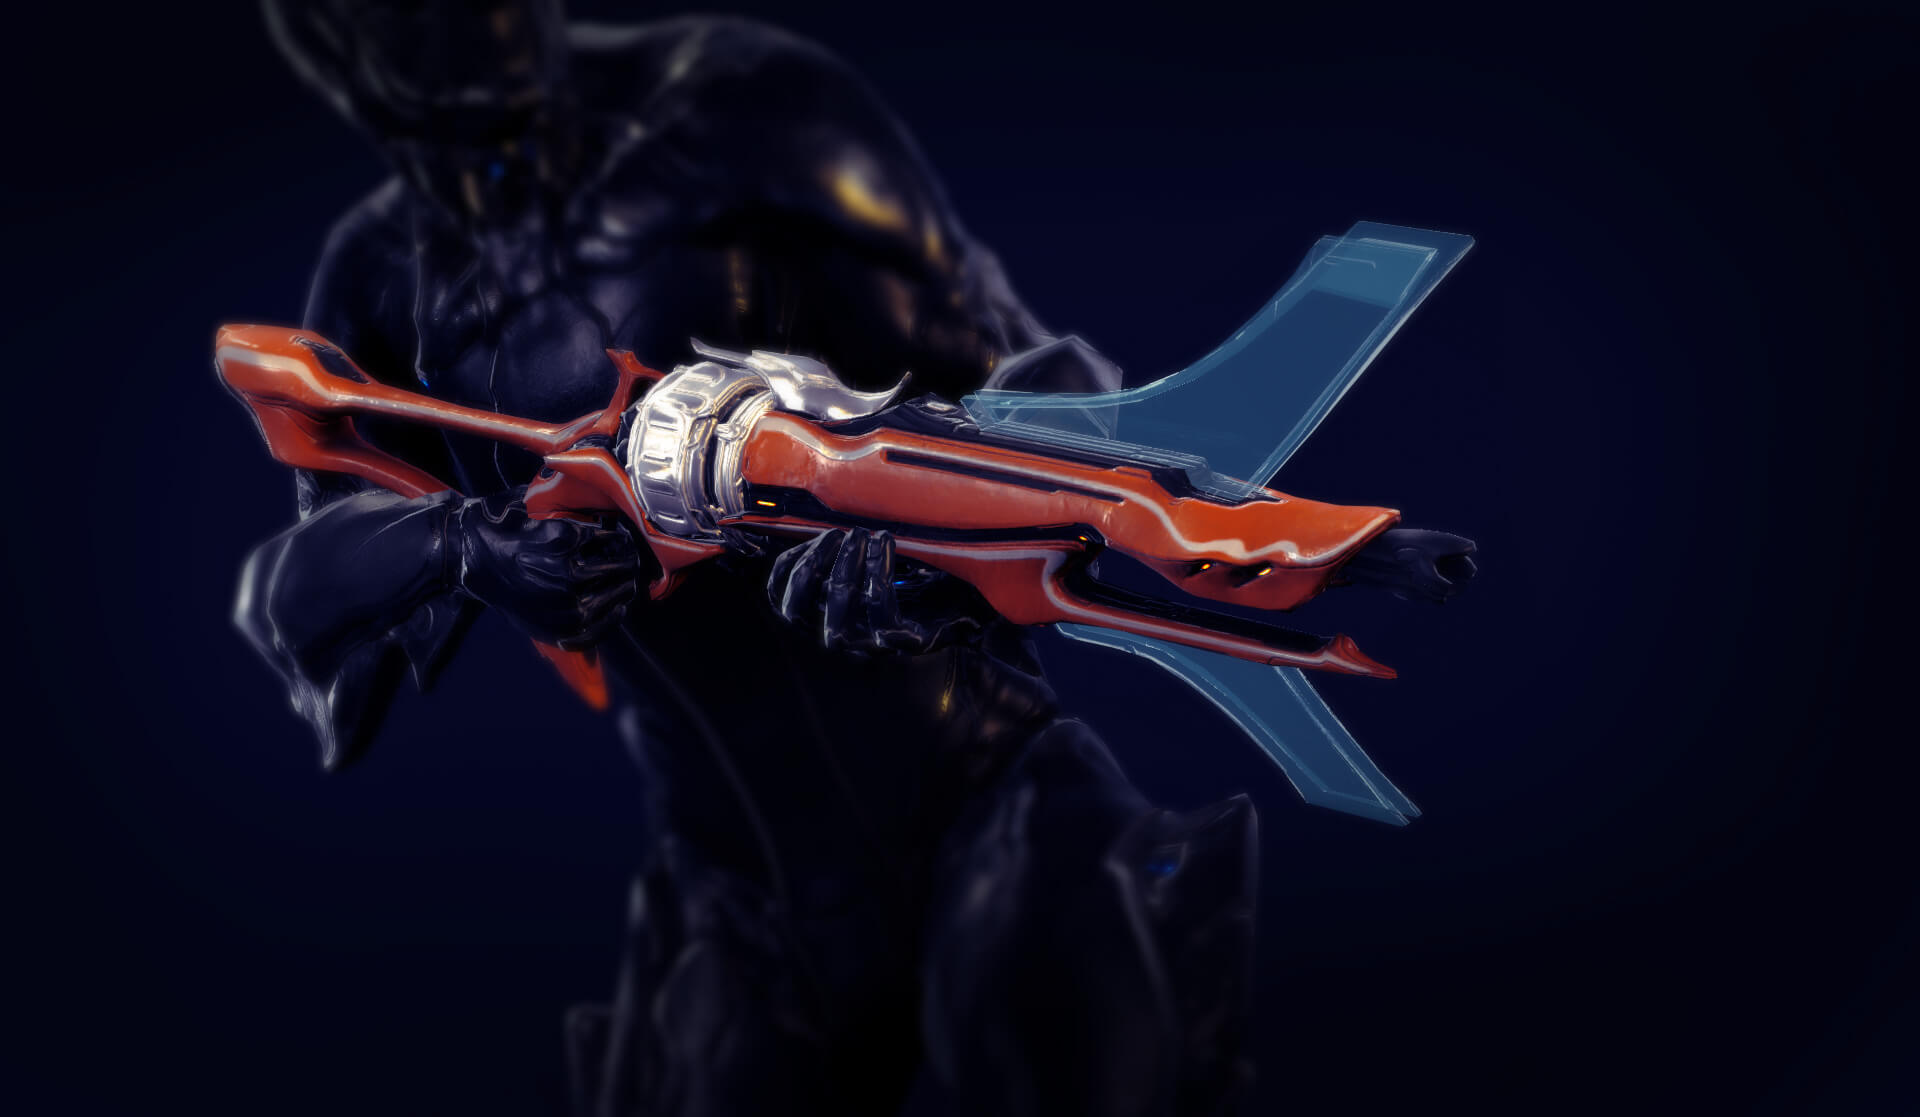 Warframe ebenen von eidolon erschien heute mit dem patch 148 blast enemies with glass slugs that devastate on impact this is garas signature weapon find it and its blueprint in the market today malvernweather Gallery